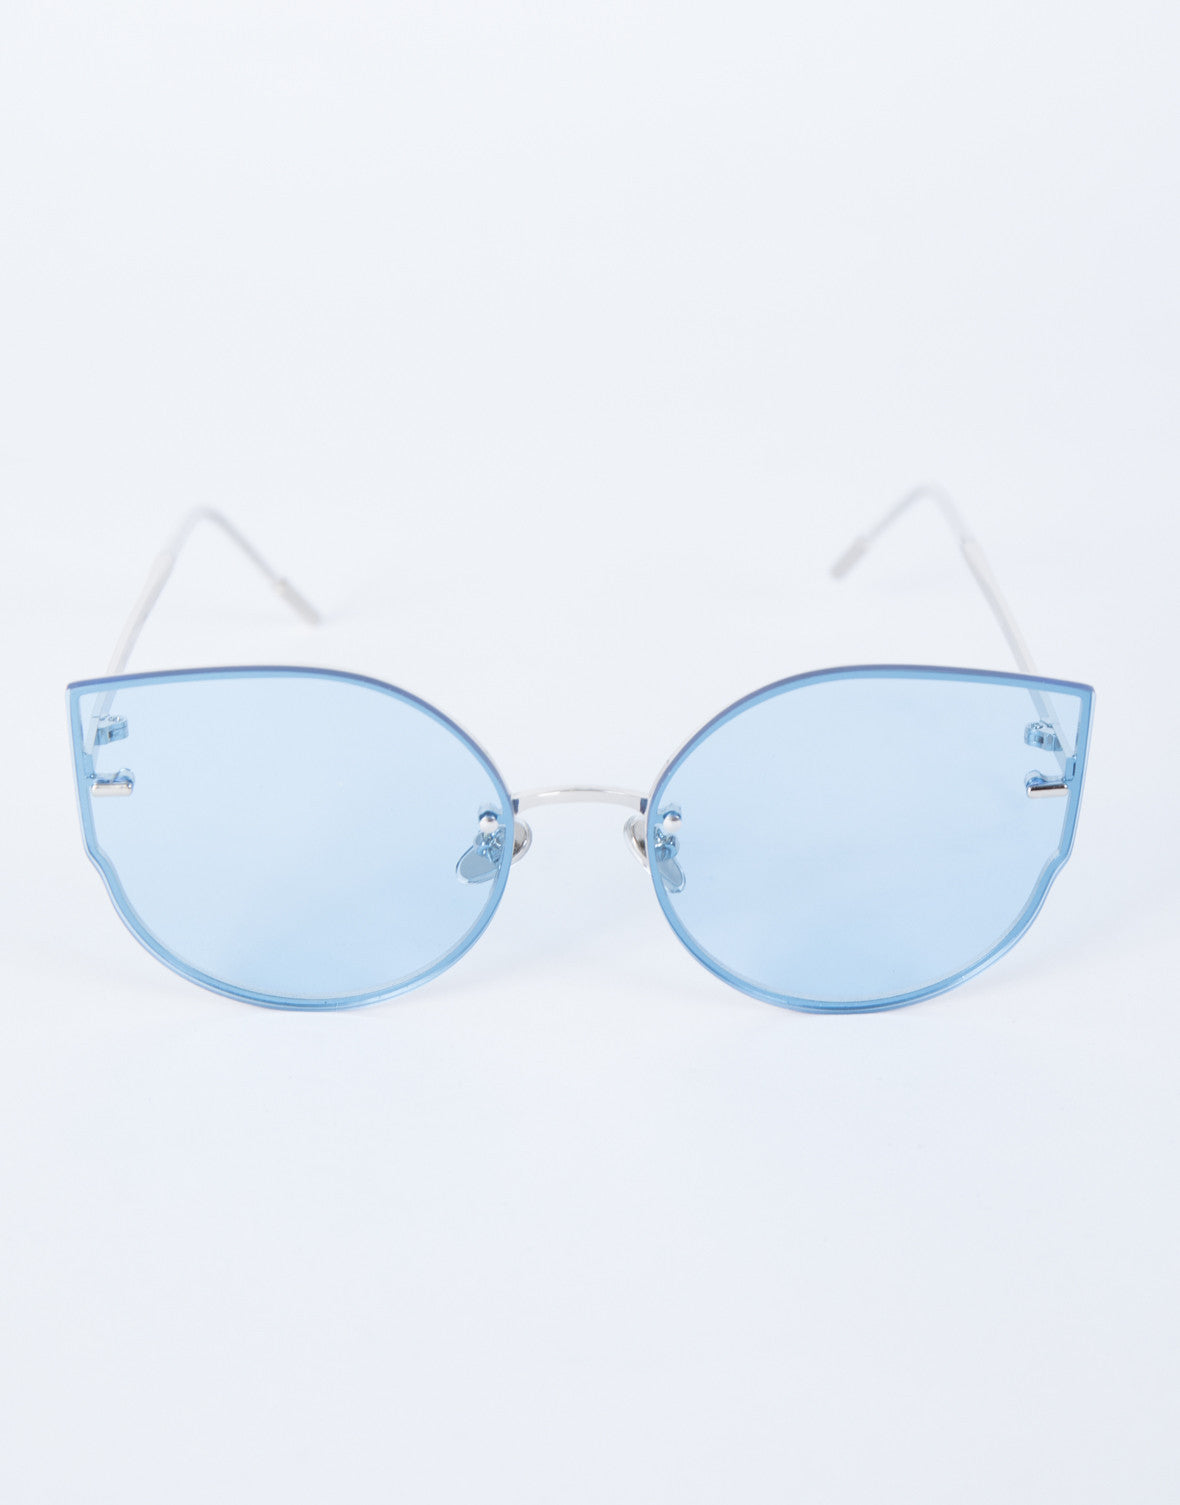 Blue Summer Fun Sunnies - Top View